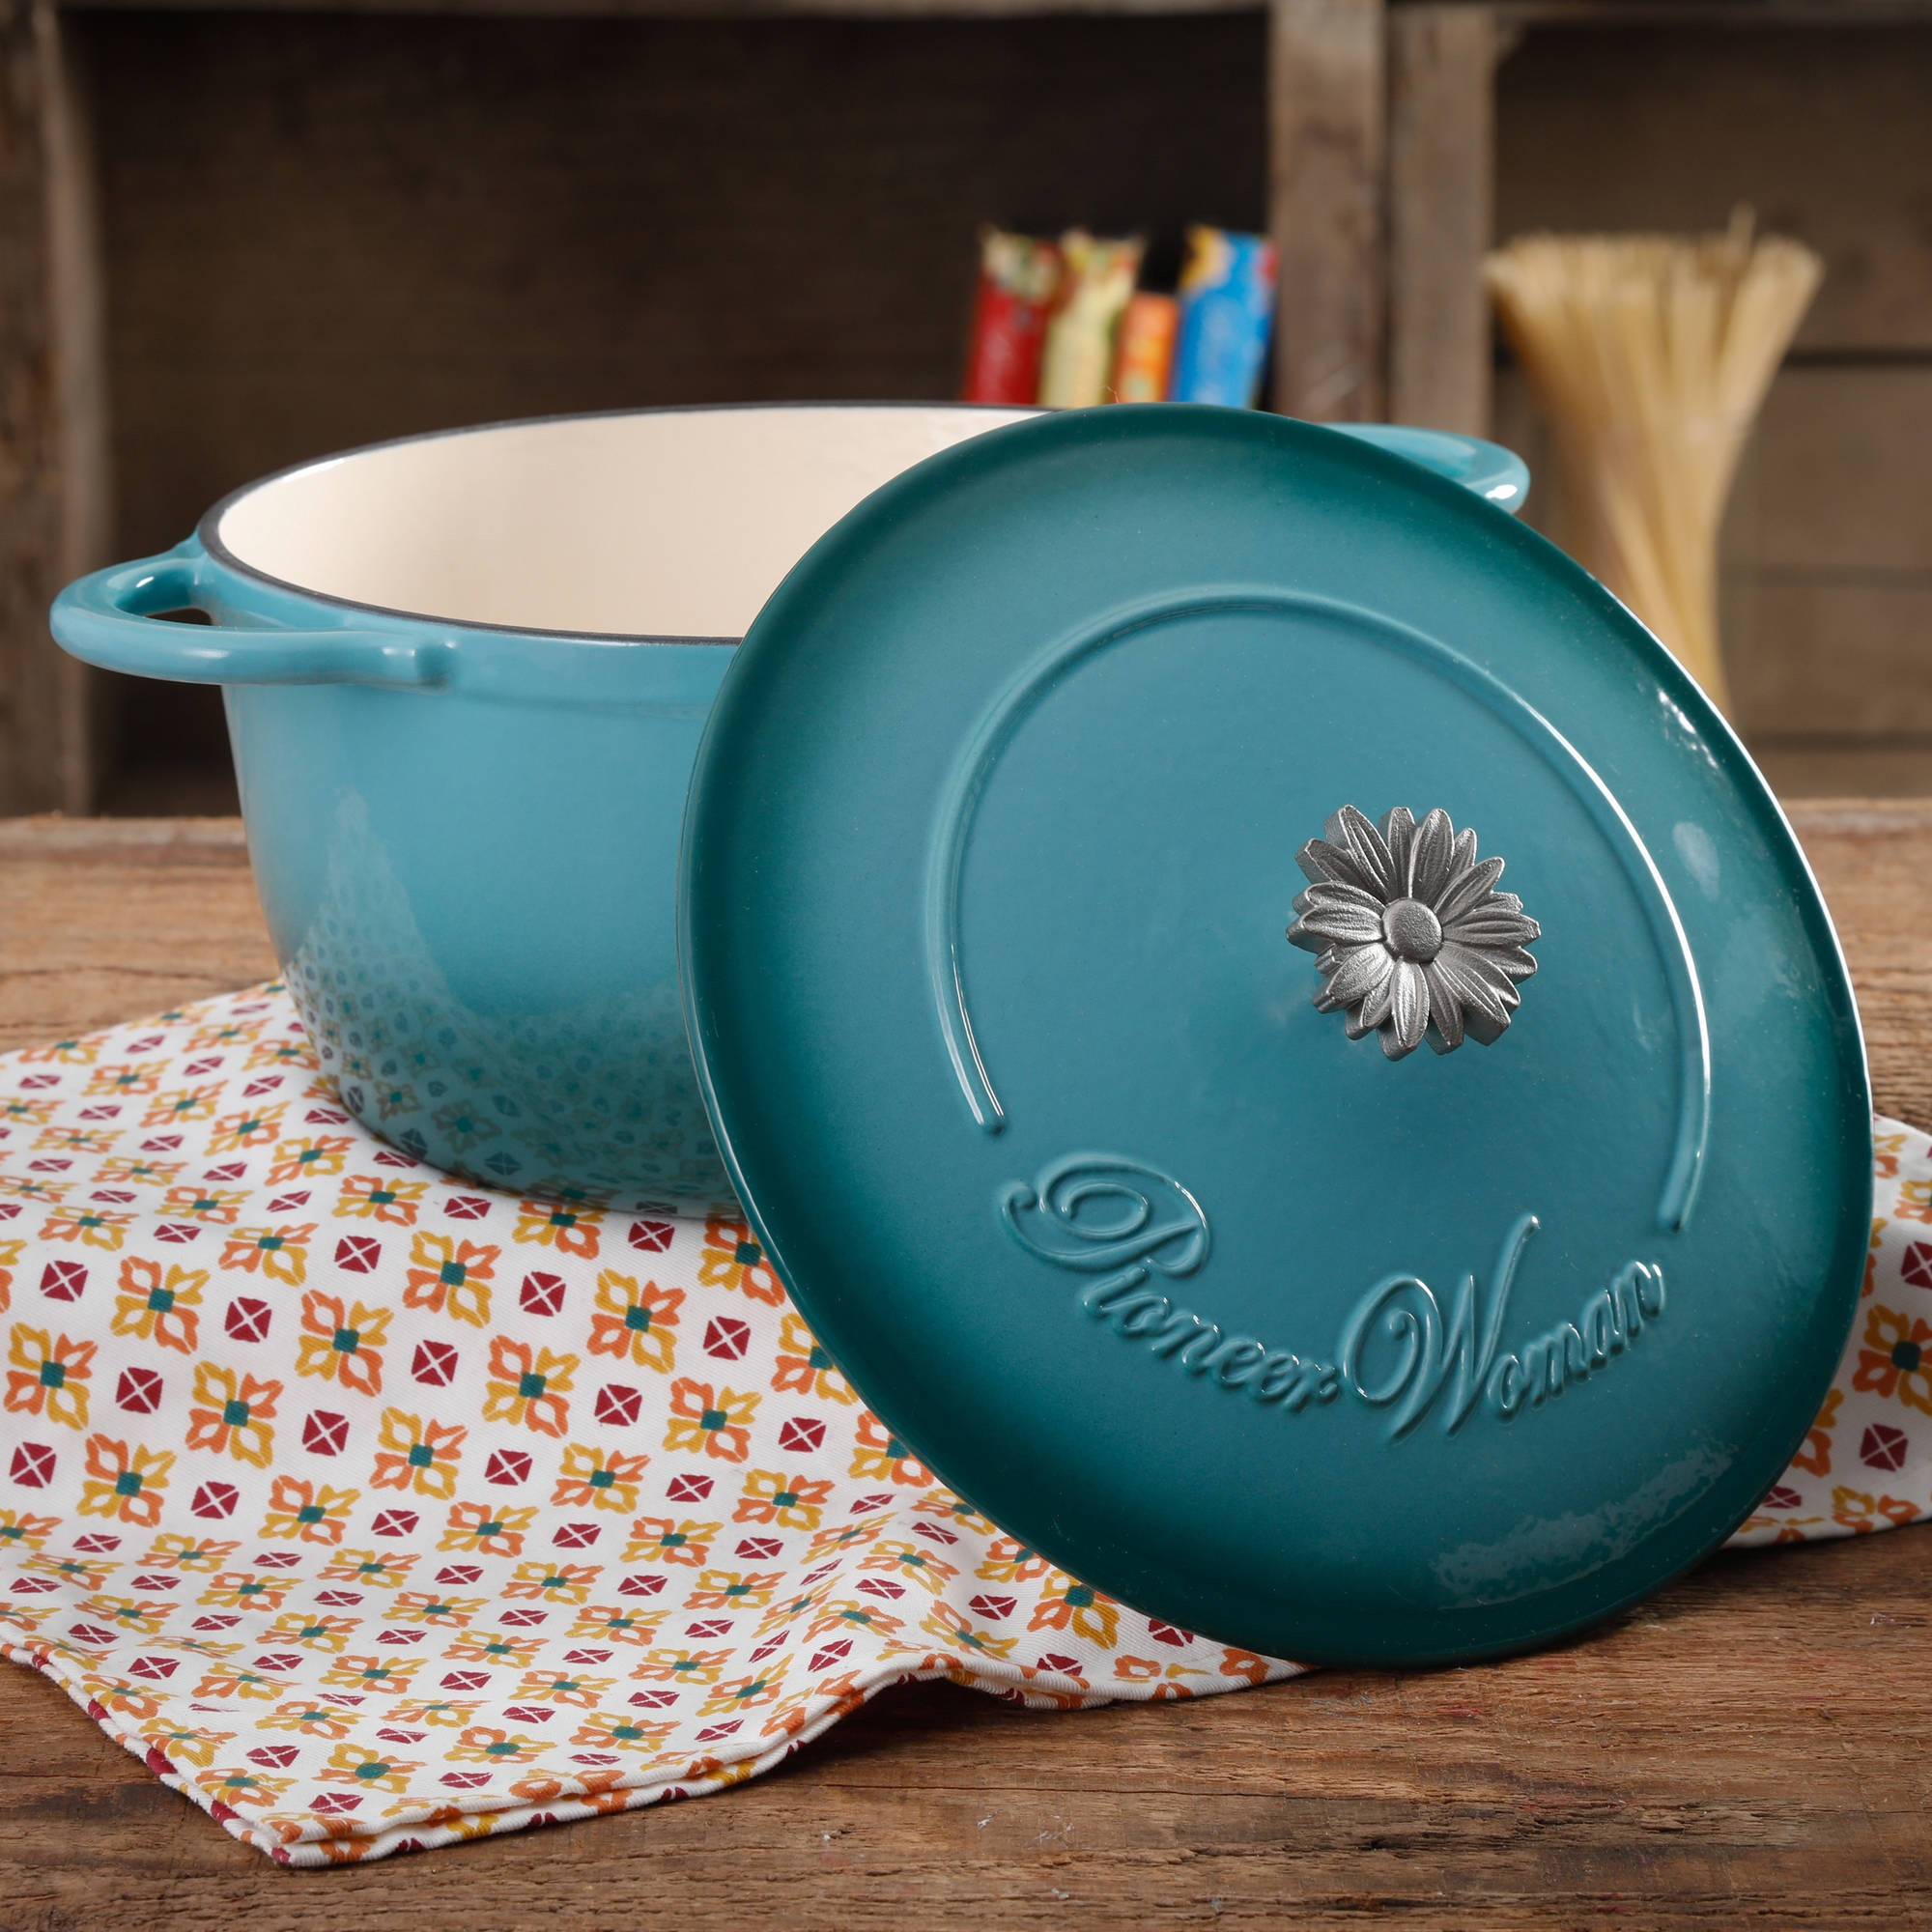 The Pioneer Woman Timeless Beauty Gradient 5-Quart Dutch Oven with Daisy and Bakelite Knob by Gibson Overseas Inc.